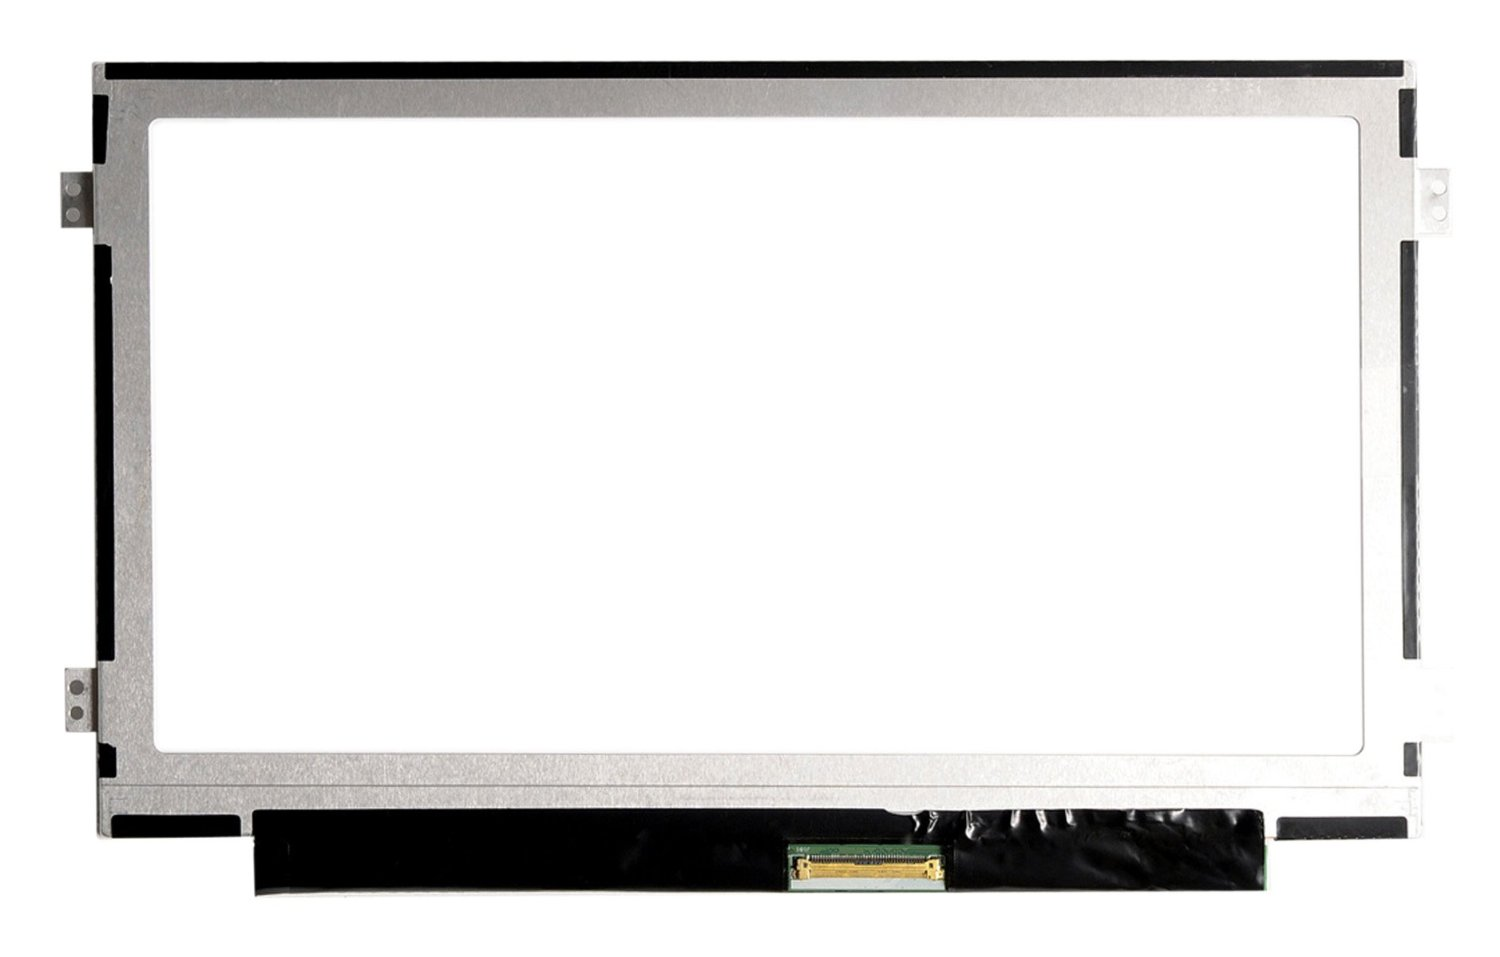 10.1 Laptop/Netbook LED LCD Screen WSVGA 1024 x 600 for Acer Apire One: AOD270, D270-1865, D270-1824, D270-1835 женская юбка laisiyi saia femininas sk1056